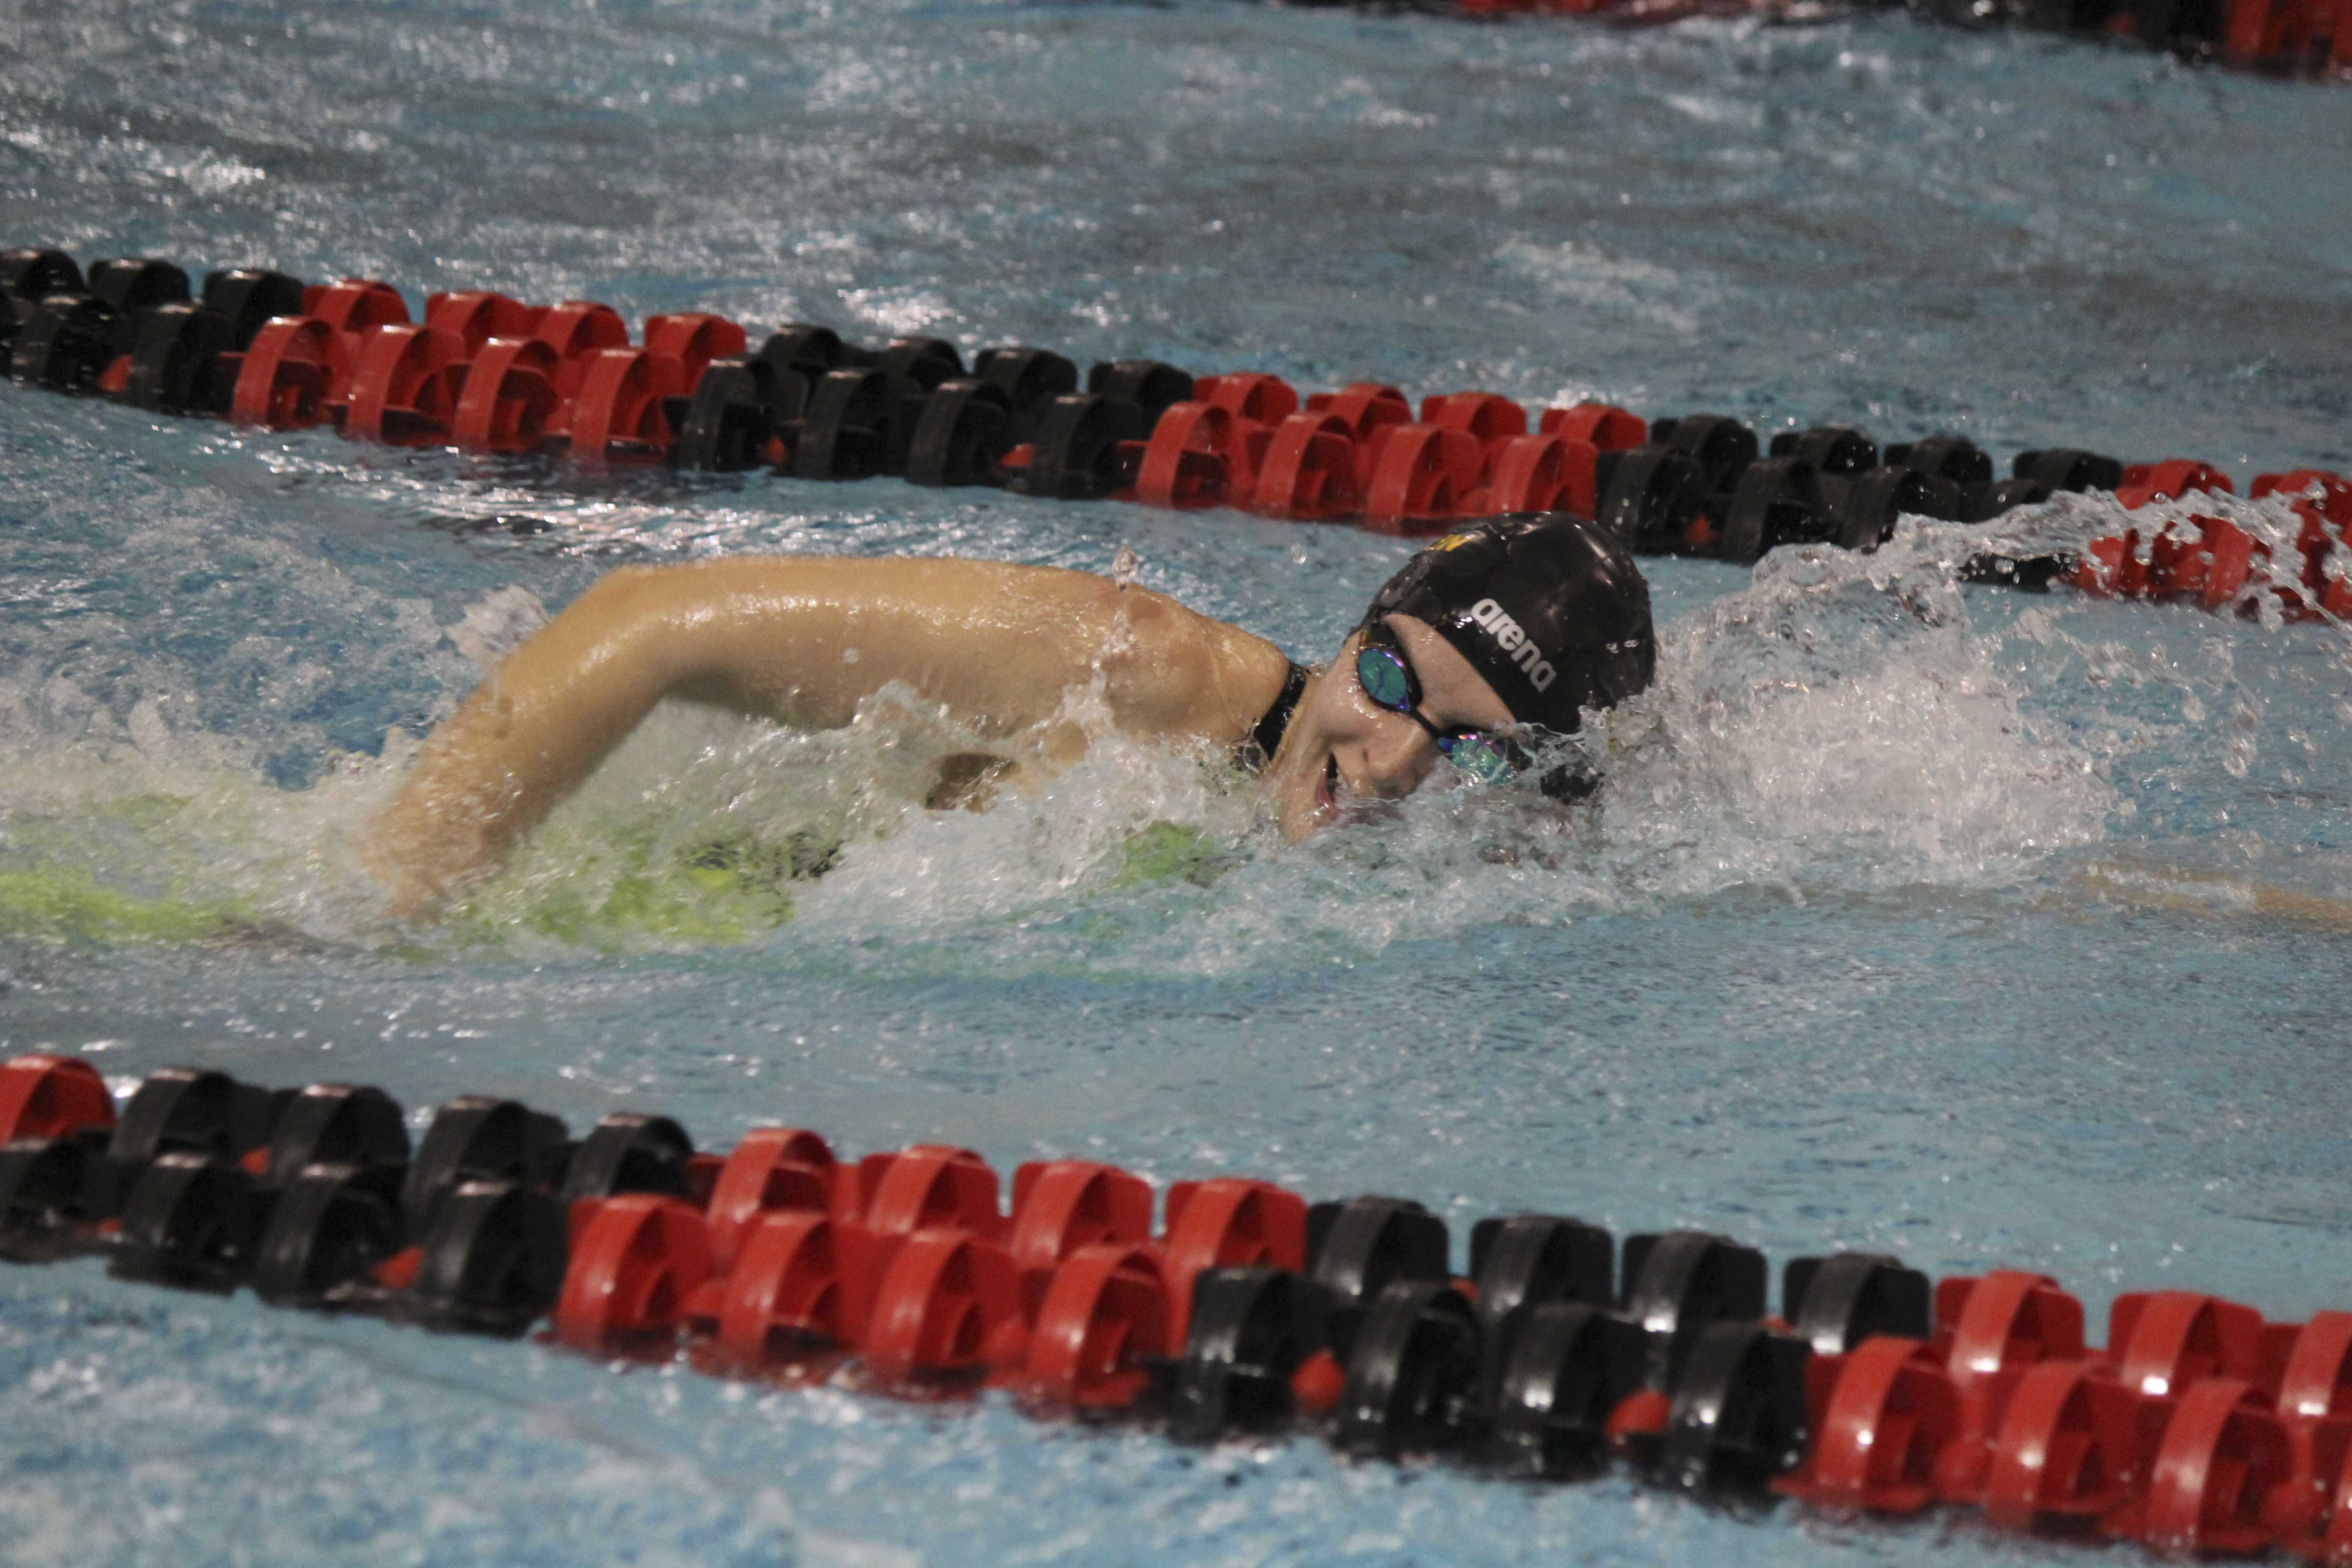 Senior Maddie Prangley swims the freestyle at the NCAC Championships. Prangley broke the 1,650 freestyle program record with a time of 17:32.28 to secure a seventh-place finish.